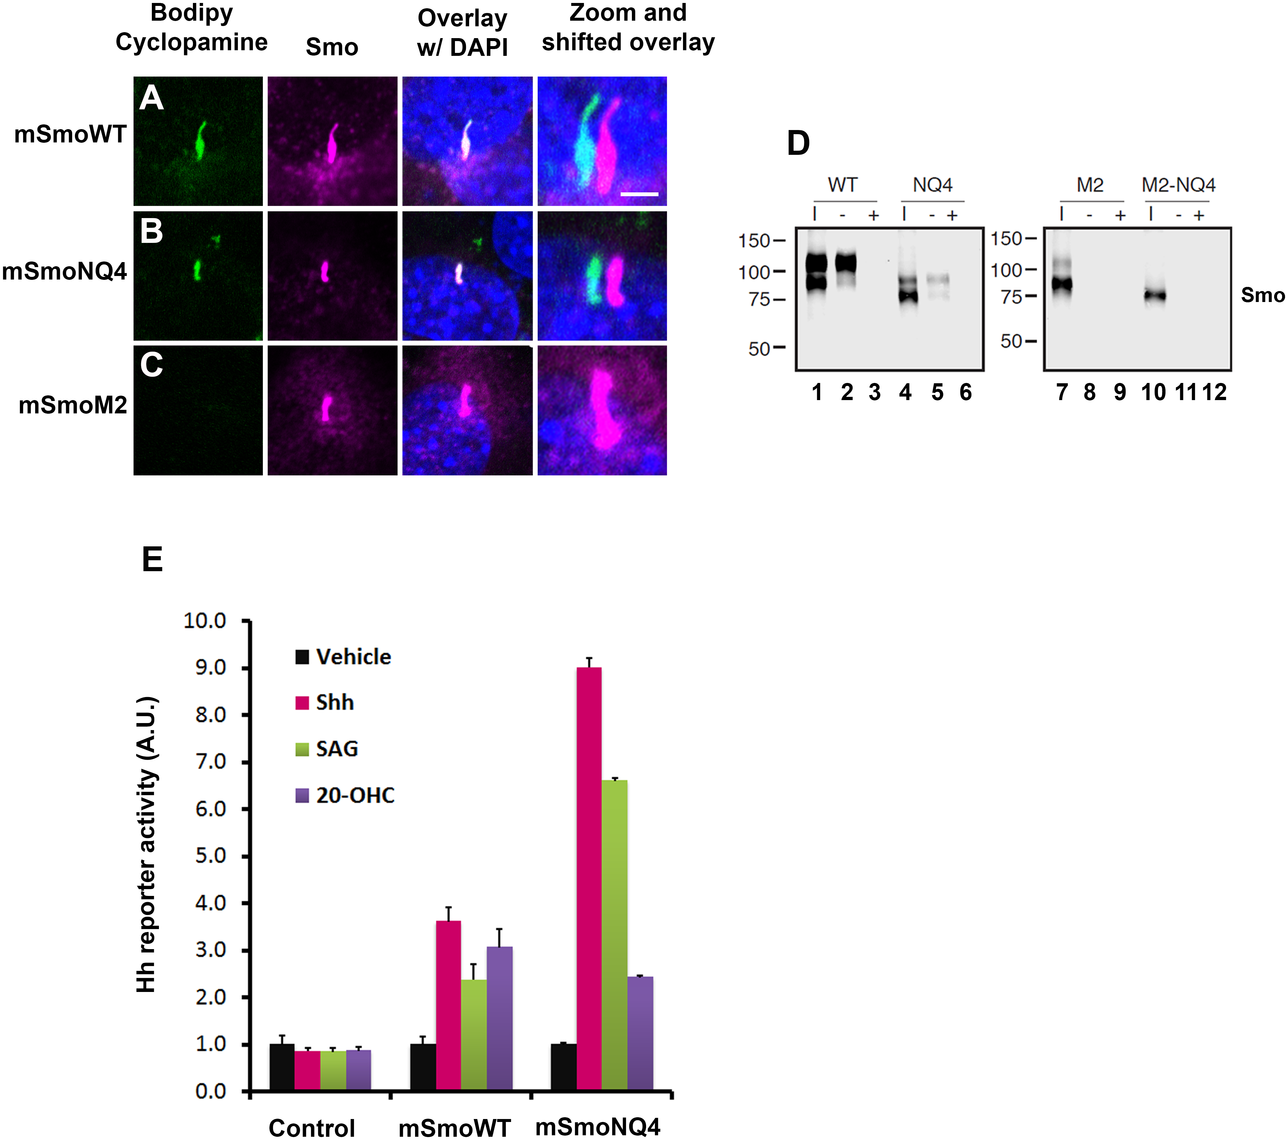 mSmoNQ4 binds ligands and activates canonical signaling.